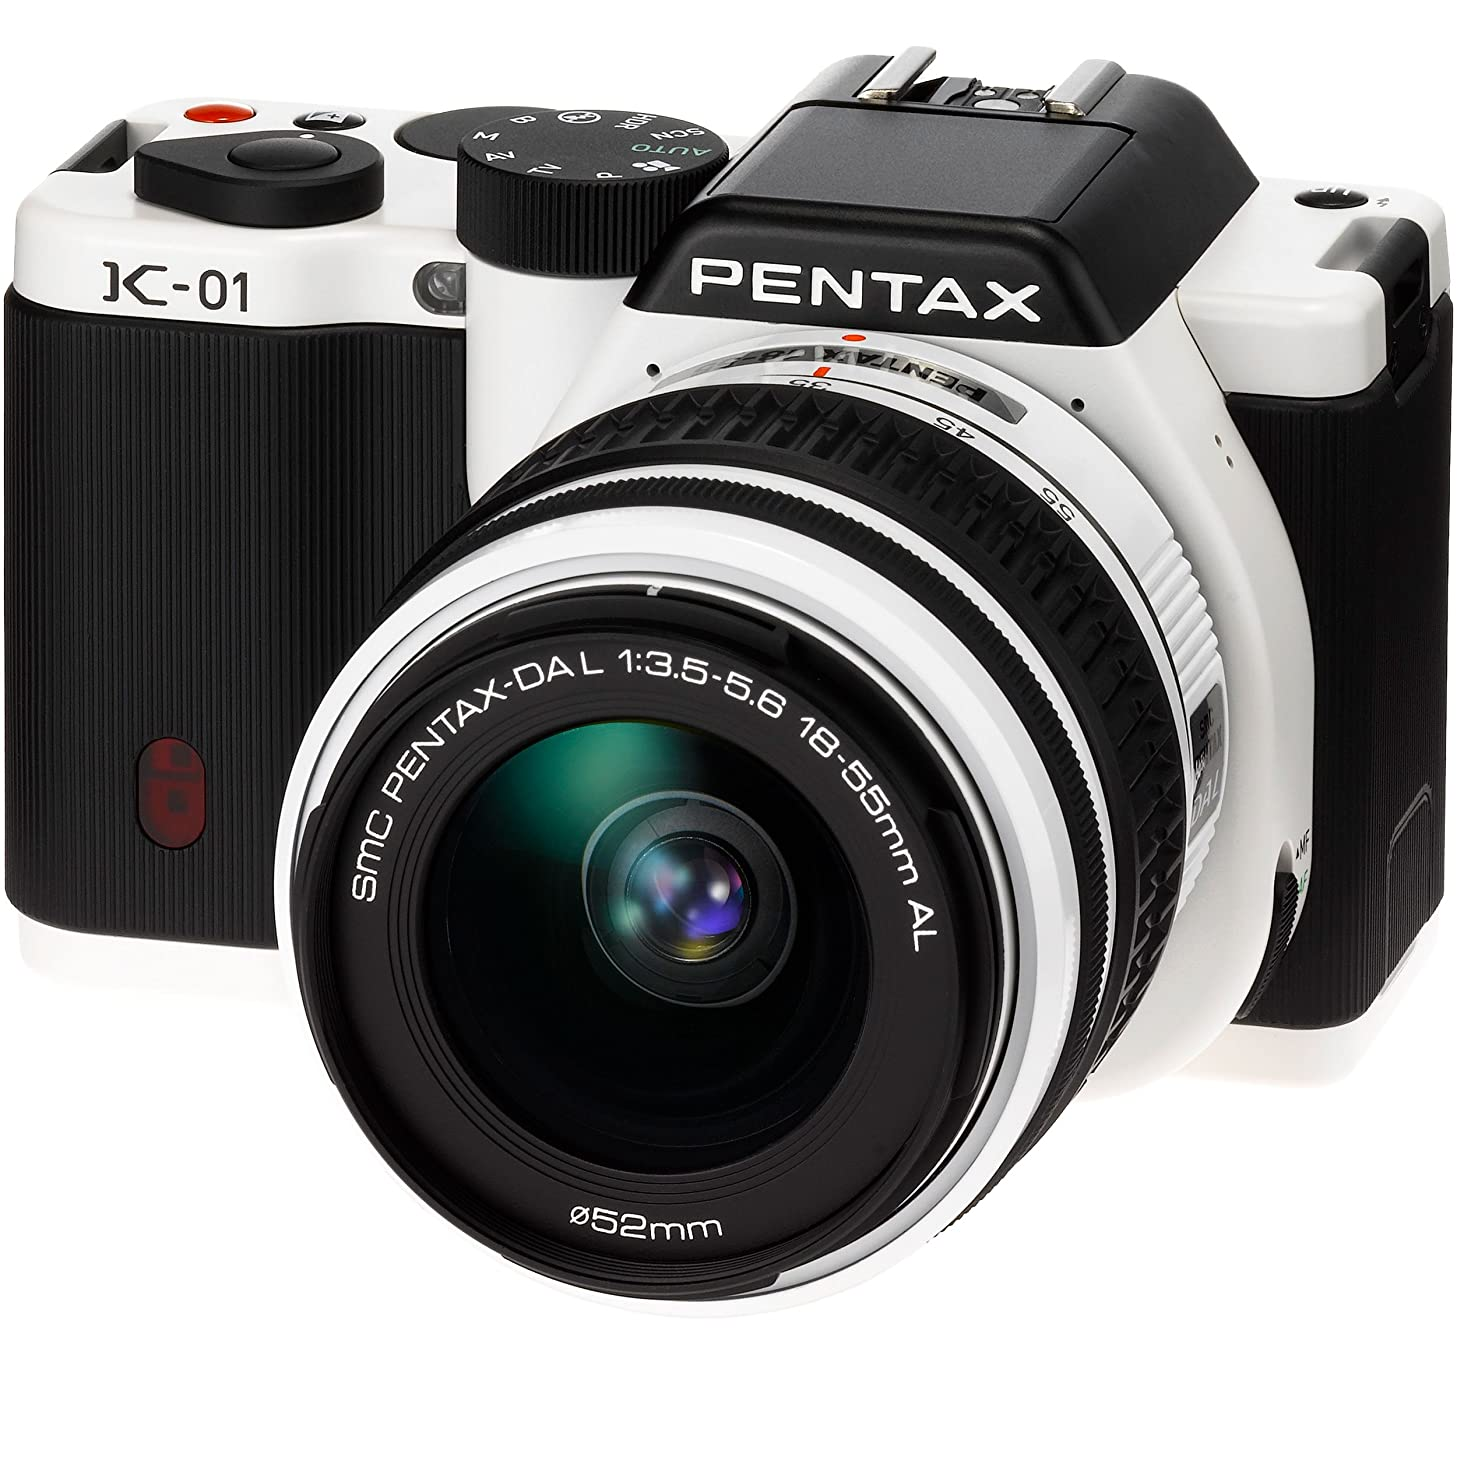 PENTAX digital SLR camera K-01 zoom lens Kit white / black K-01ZK WH / BK